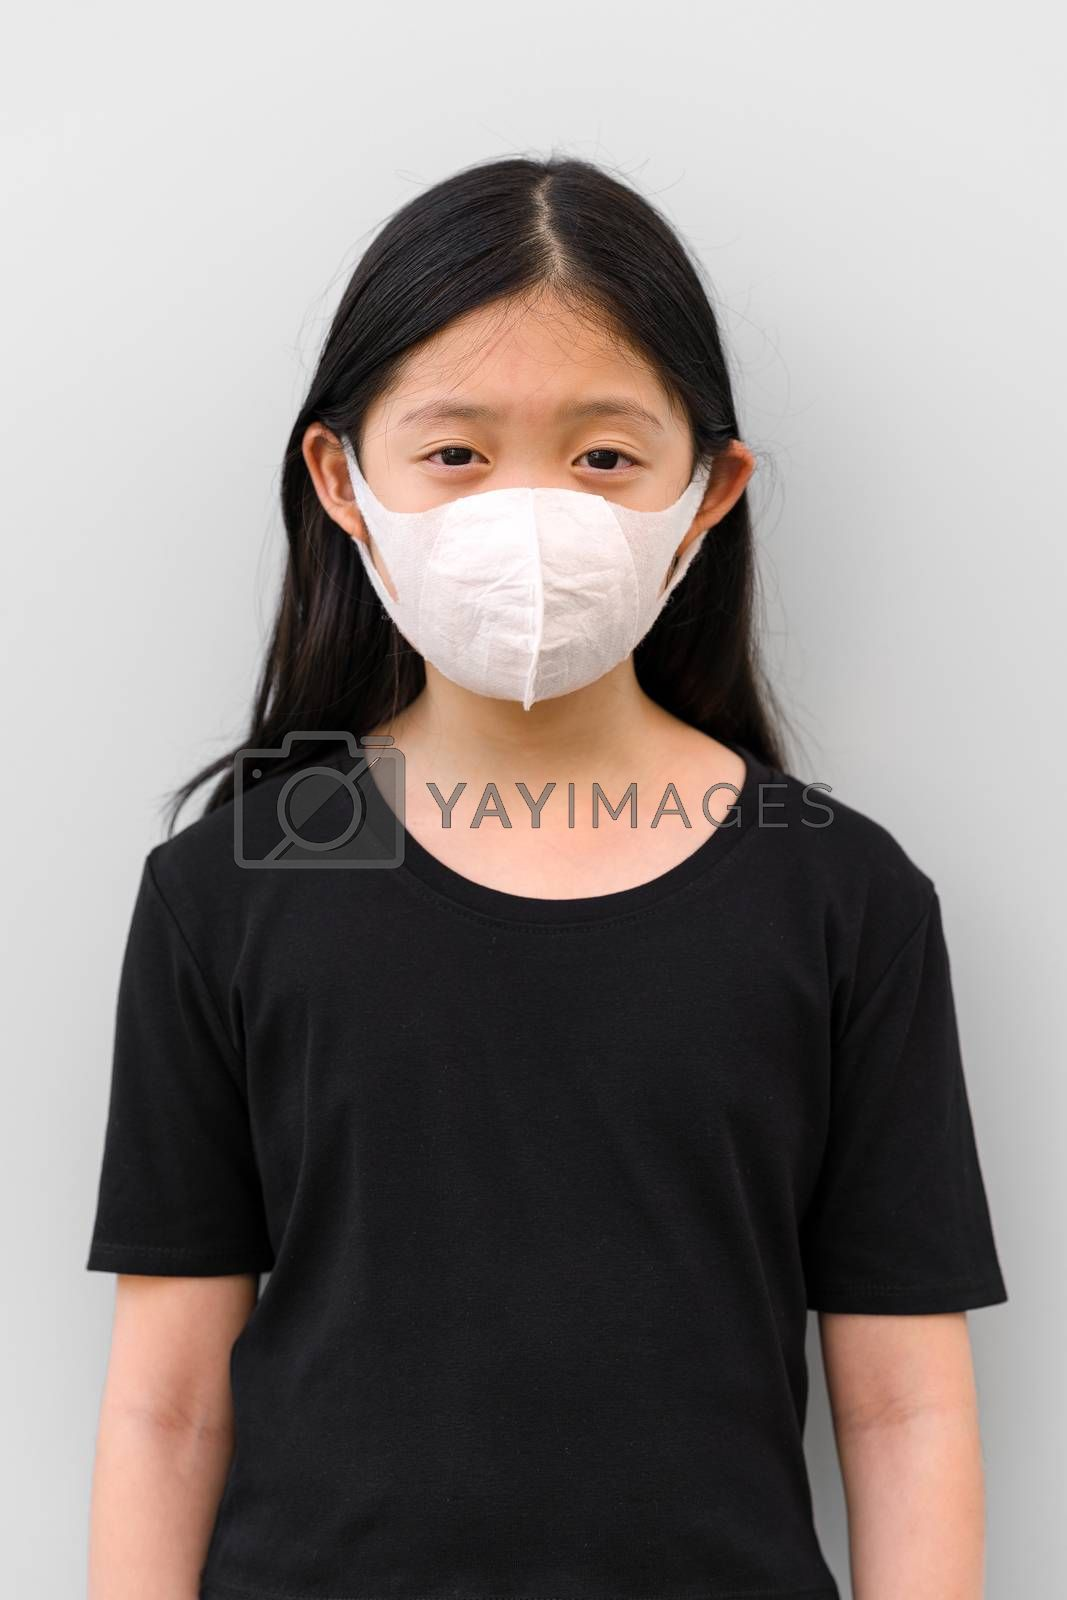 Front view of Asian child wearing mask protecting herself from COVID-19 or Corona Virus.